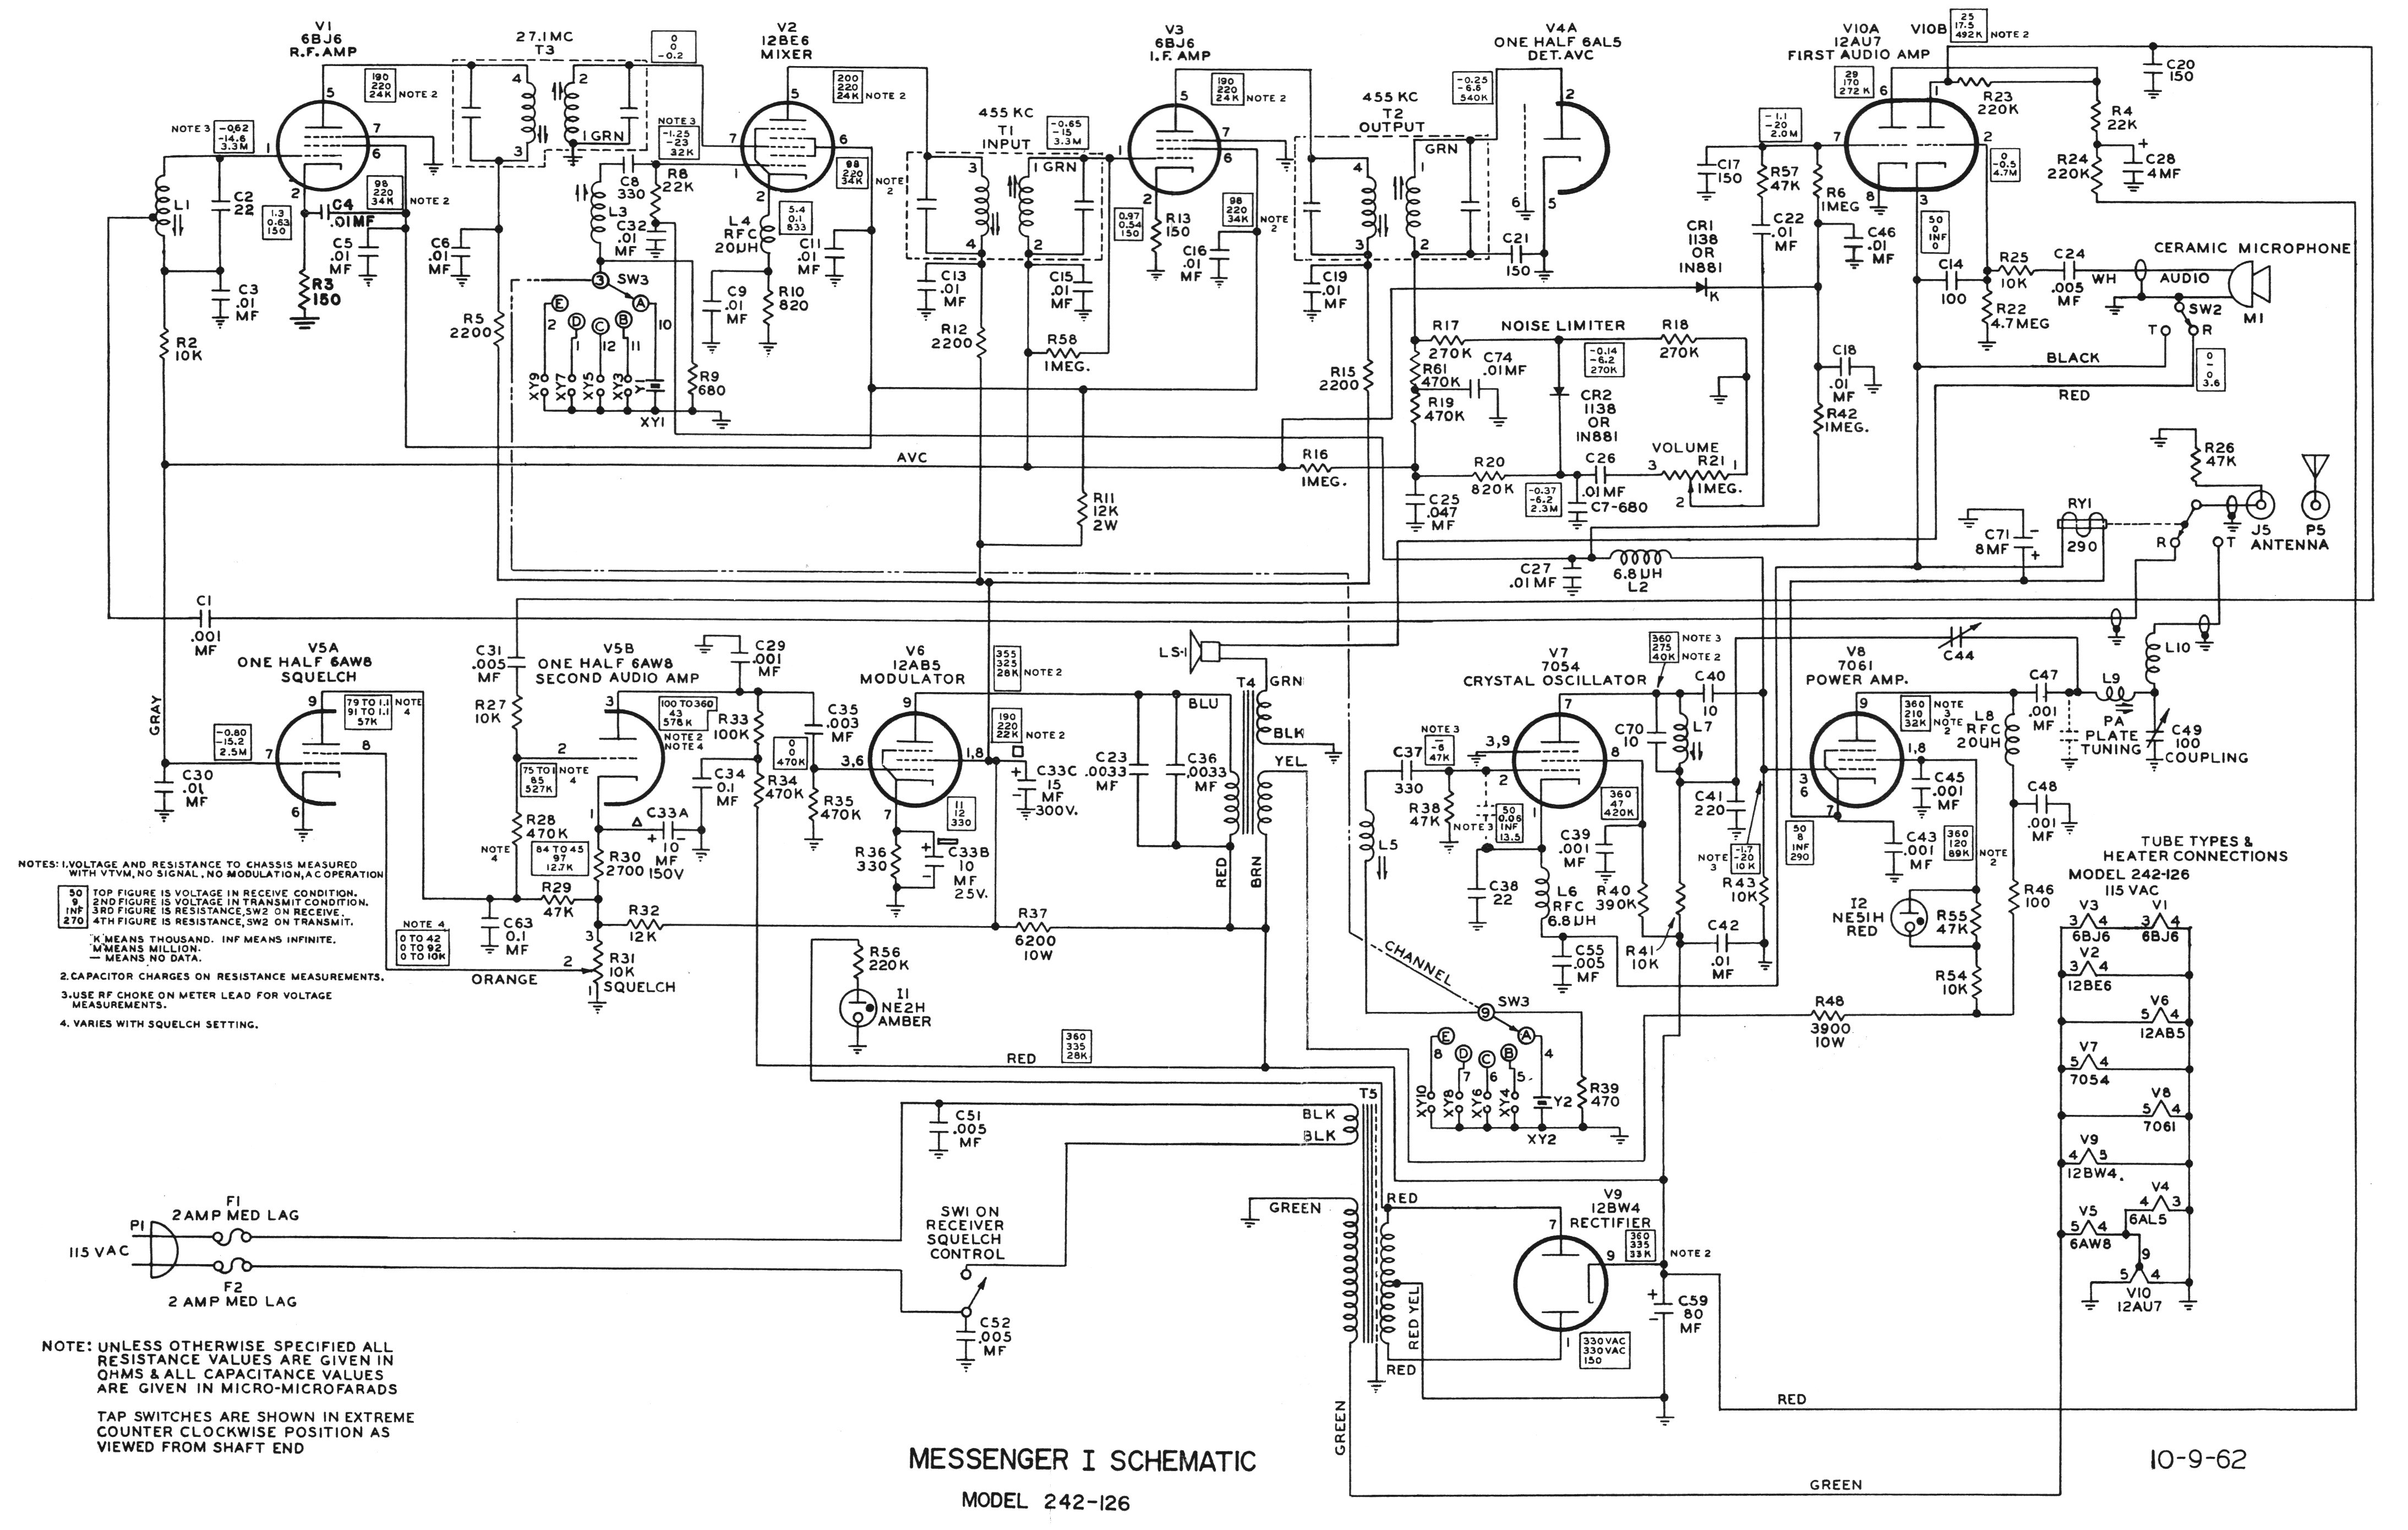 johnson messenger 250 mic wiring diagram   40 wiring